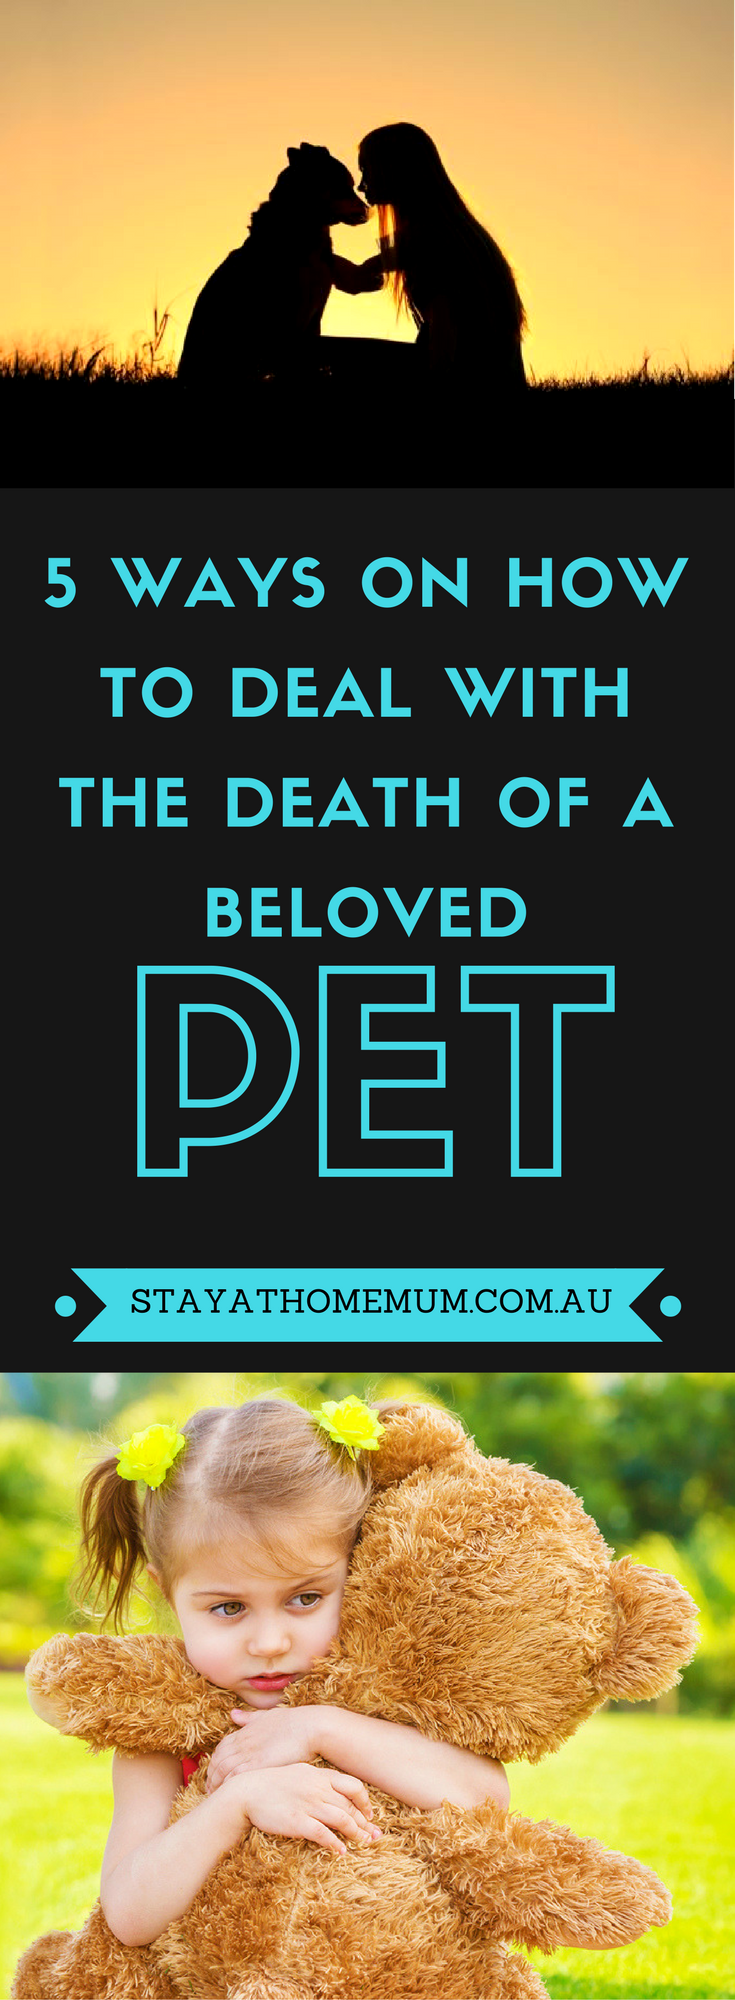 5 Ways On How To Deal With The Death Of A Beloved Pet (1)